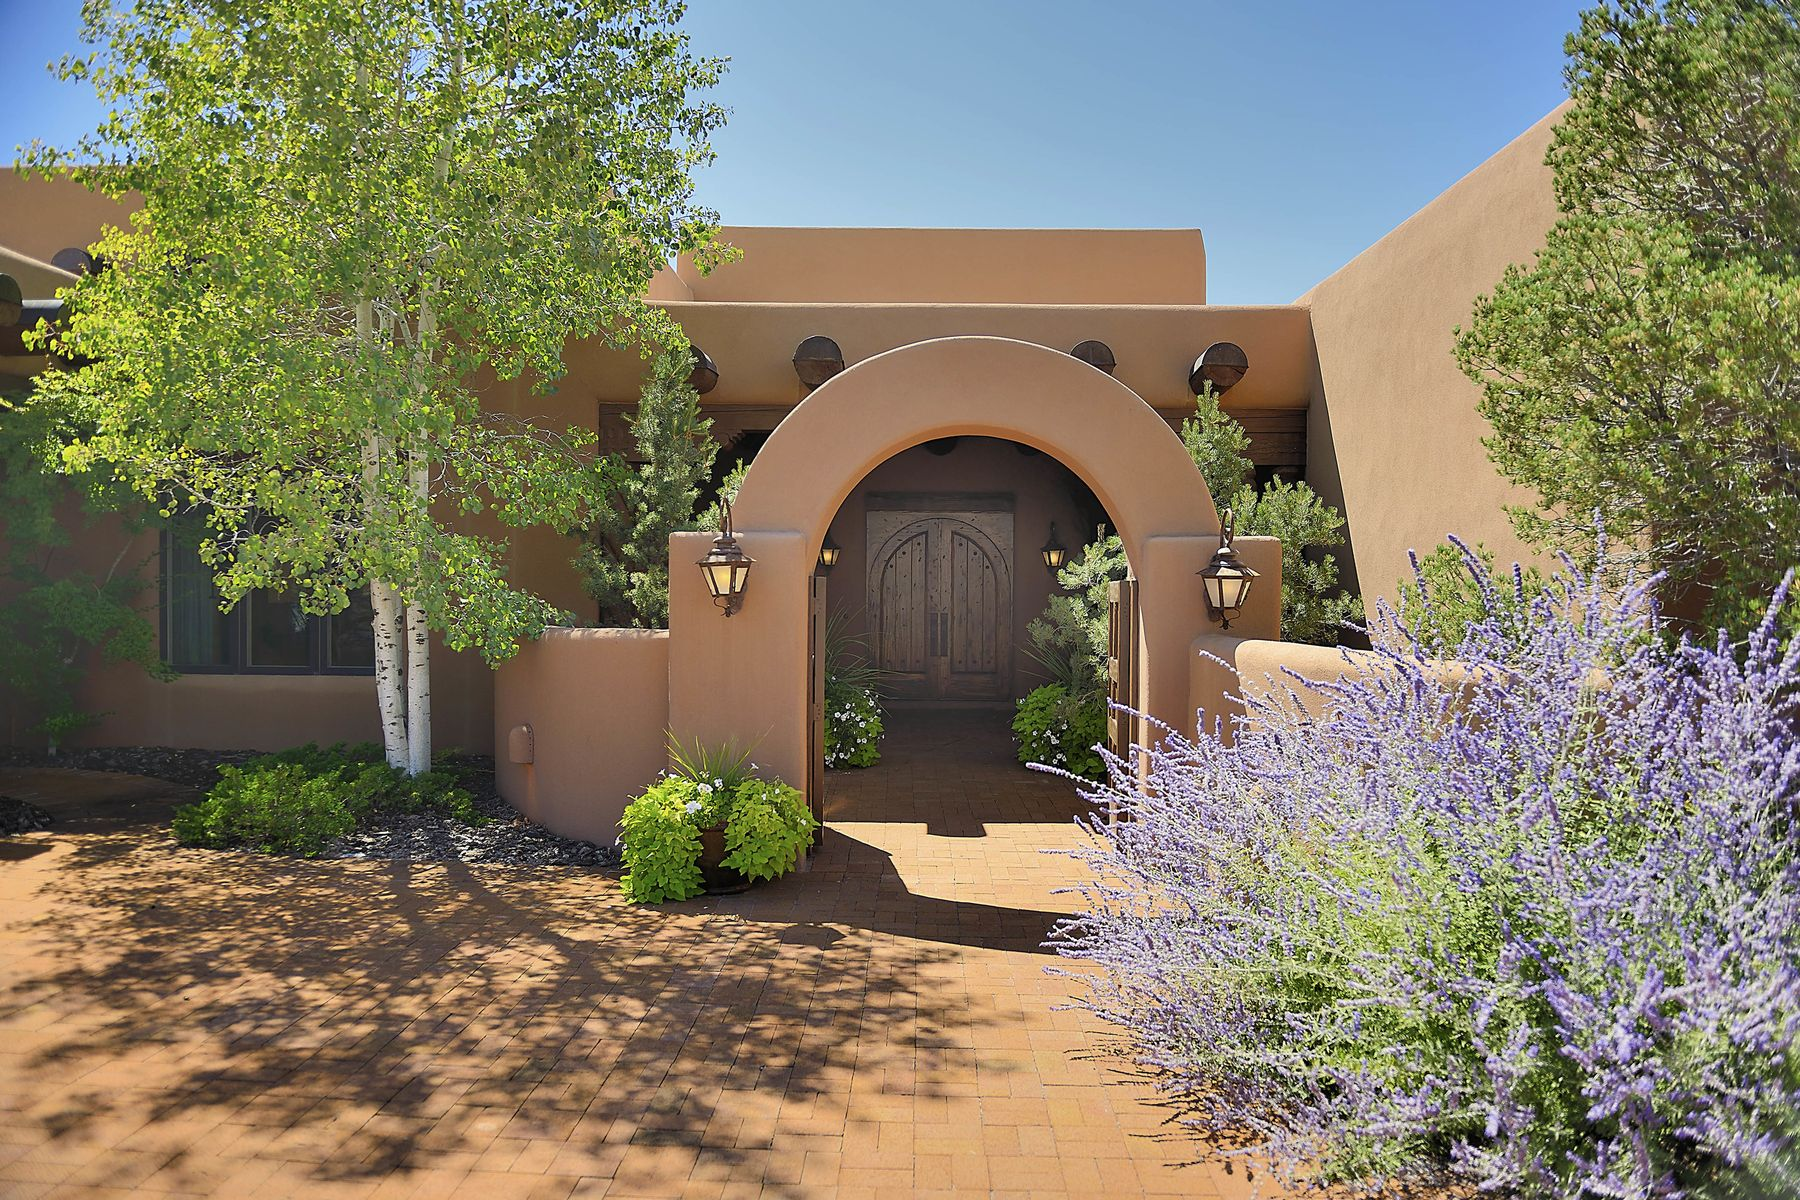 Single Family Homes للـ Sale في 127 Wildhorse Lot 682 127 Wildhorse, Lot 682, Santa Fe, New Mexico 87506 United States